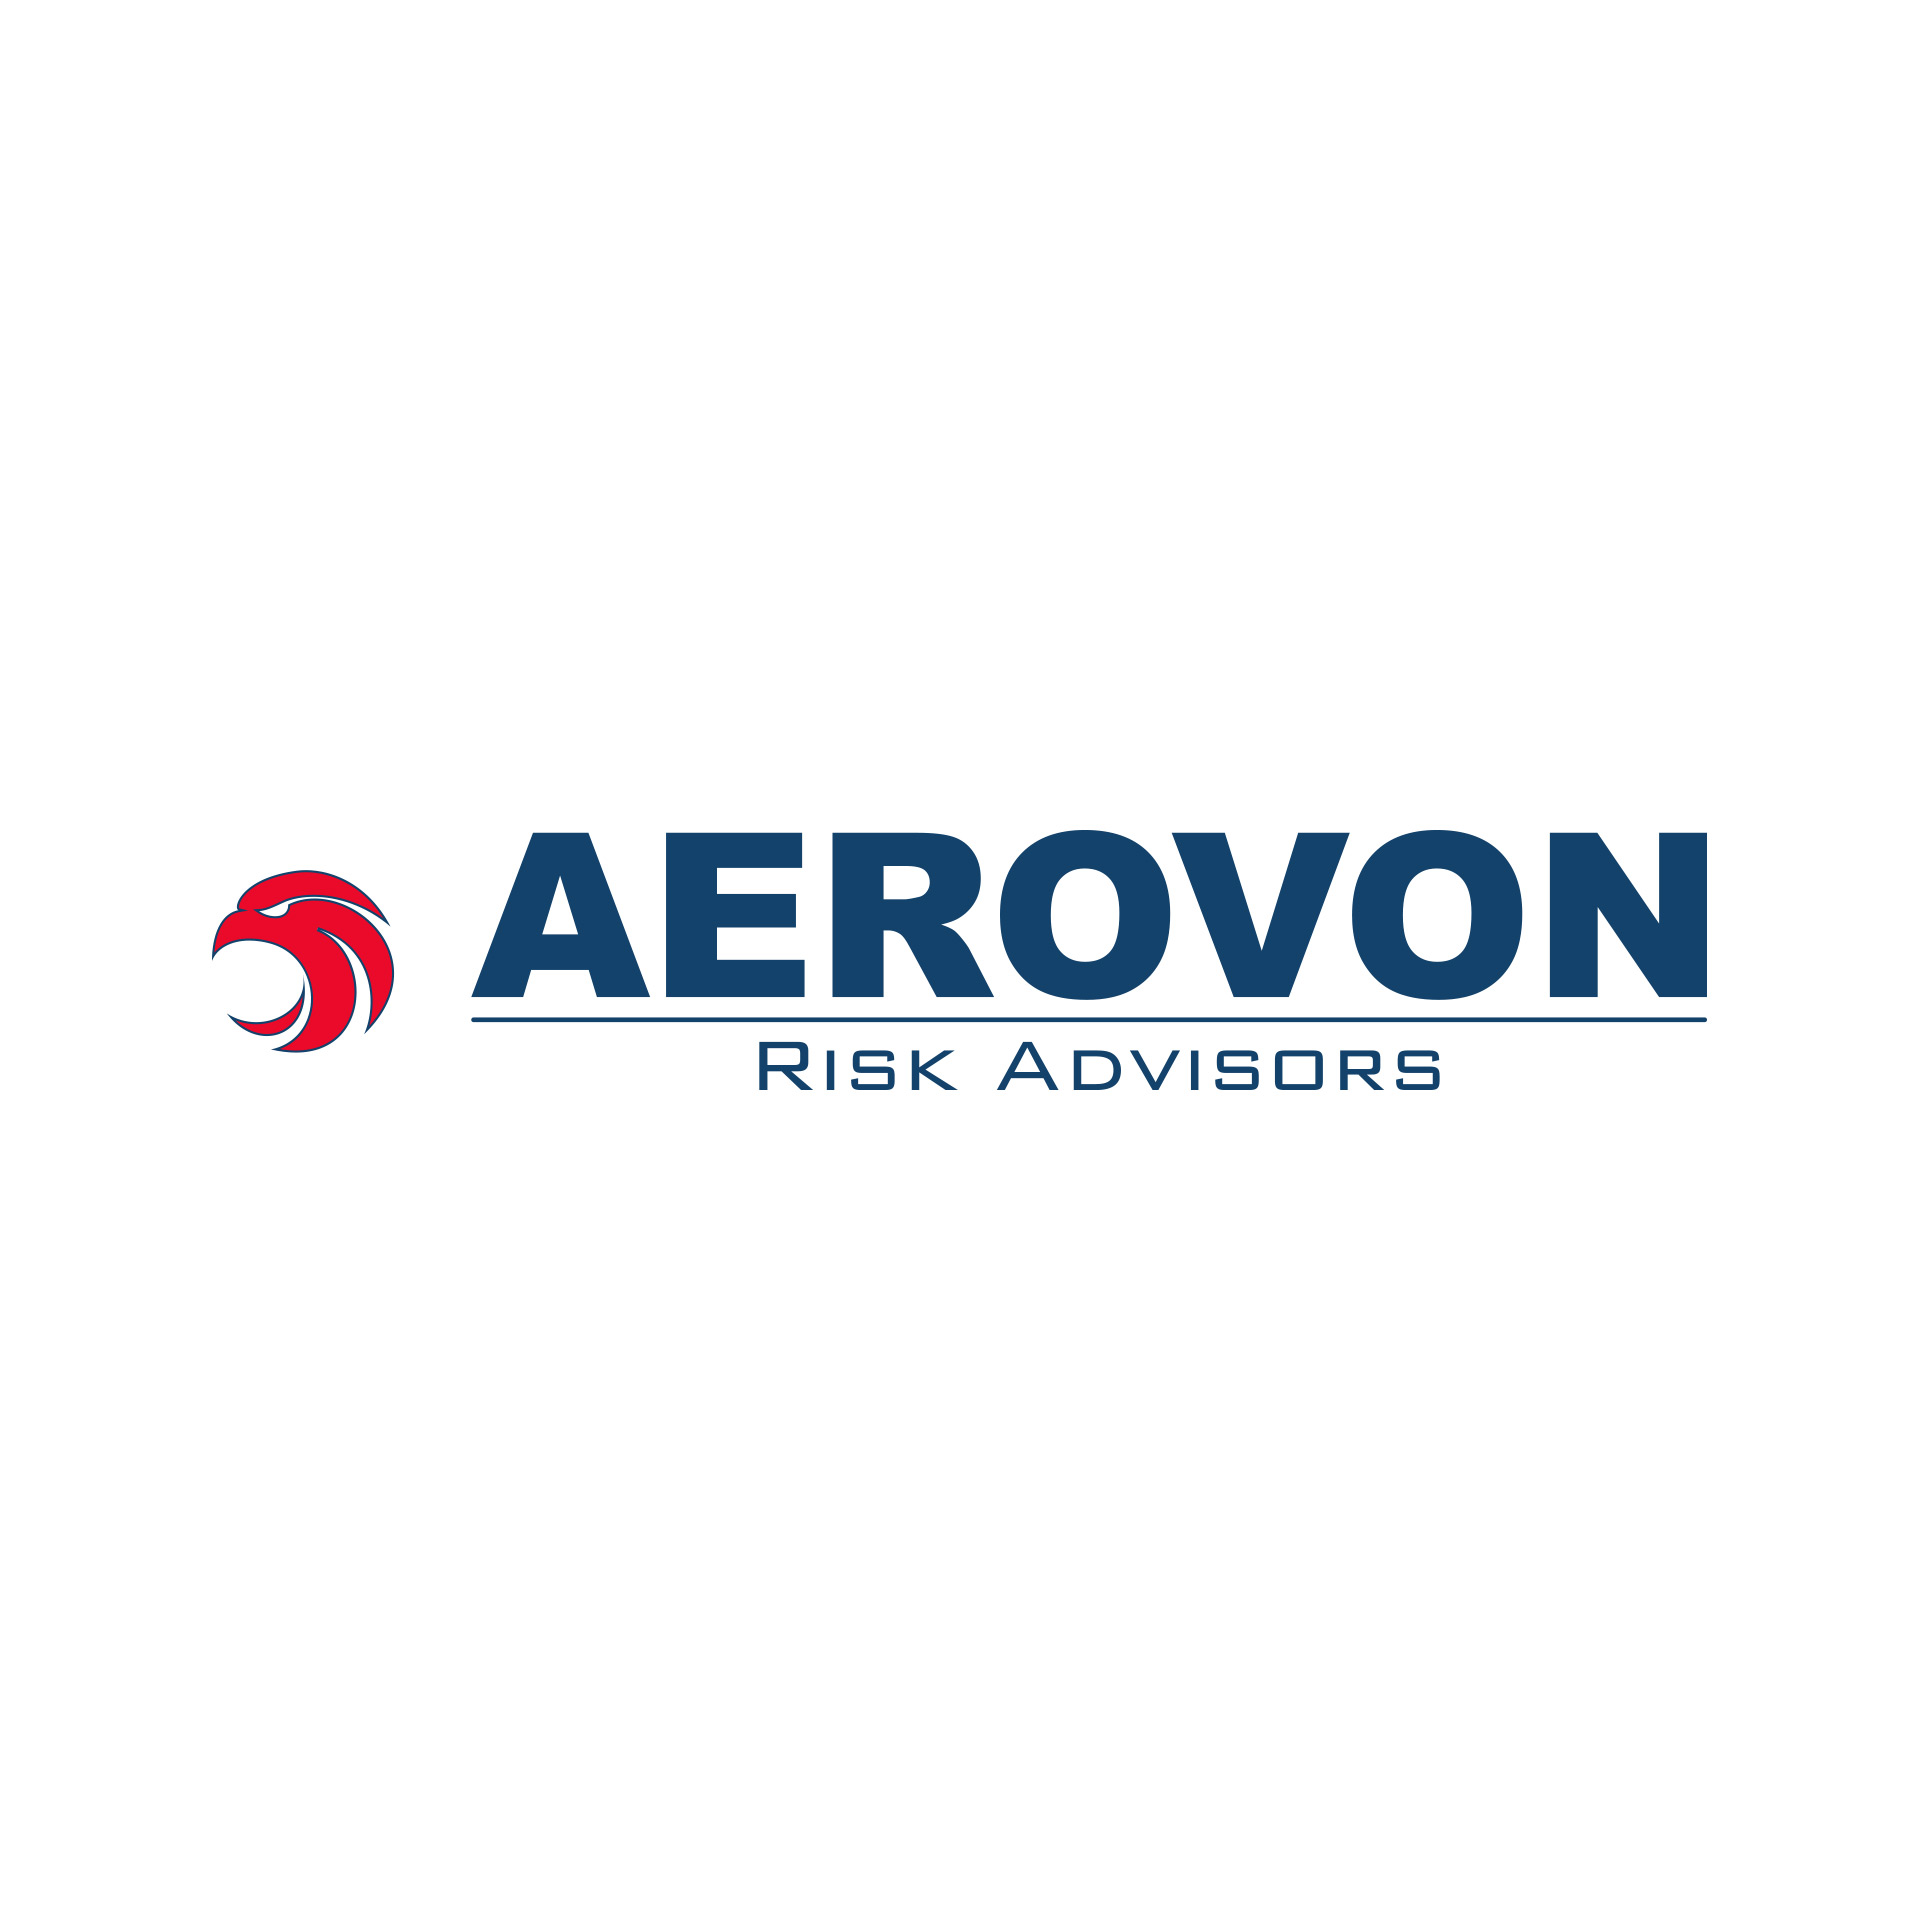 Aerovon Risk Advisors